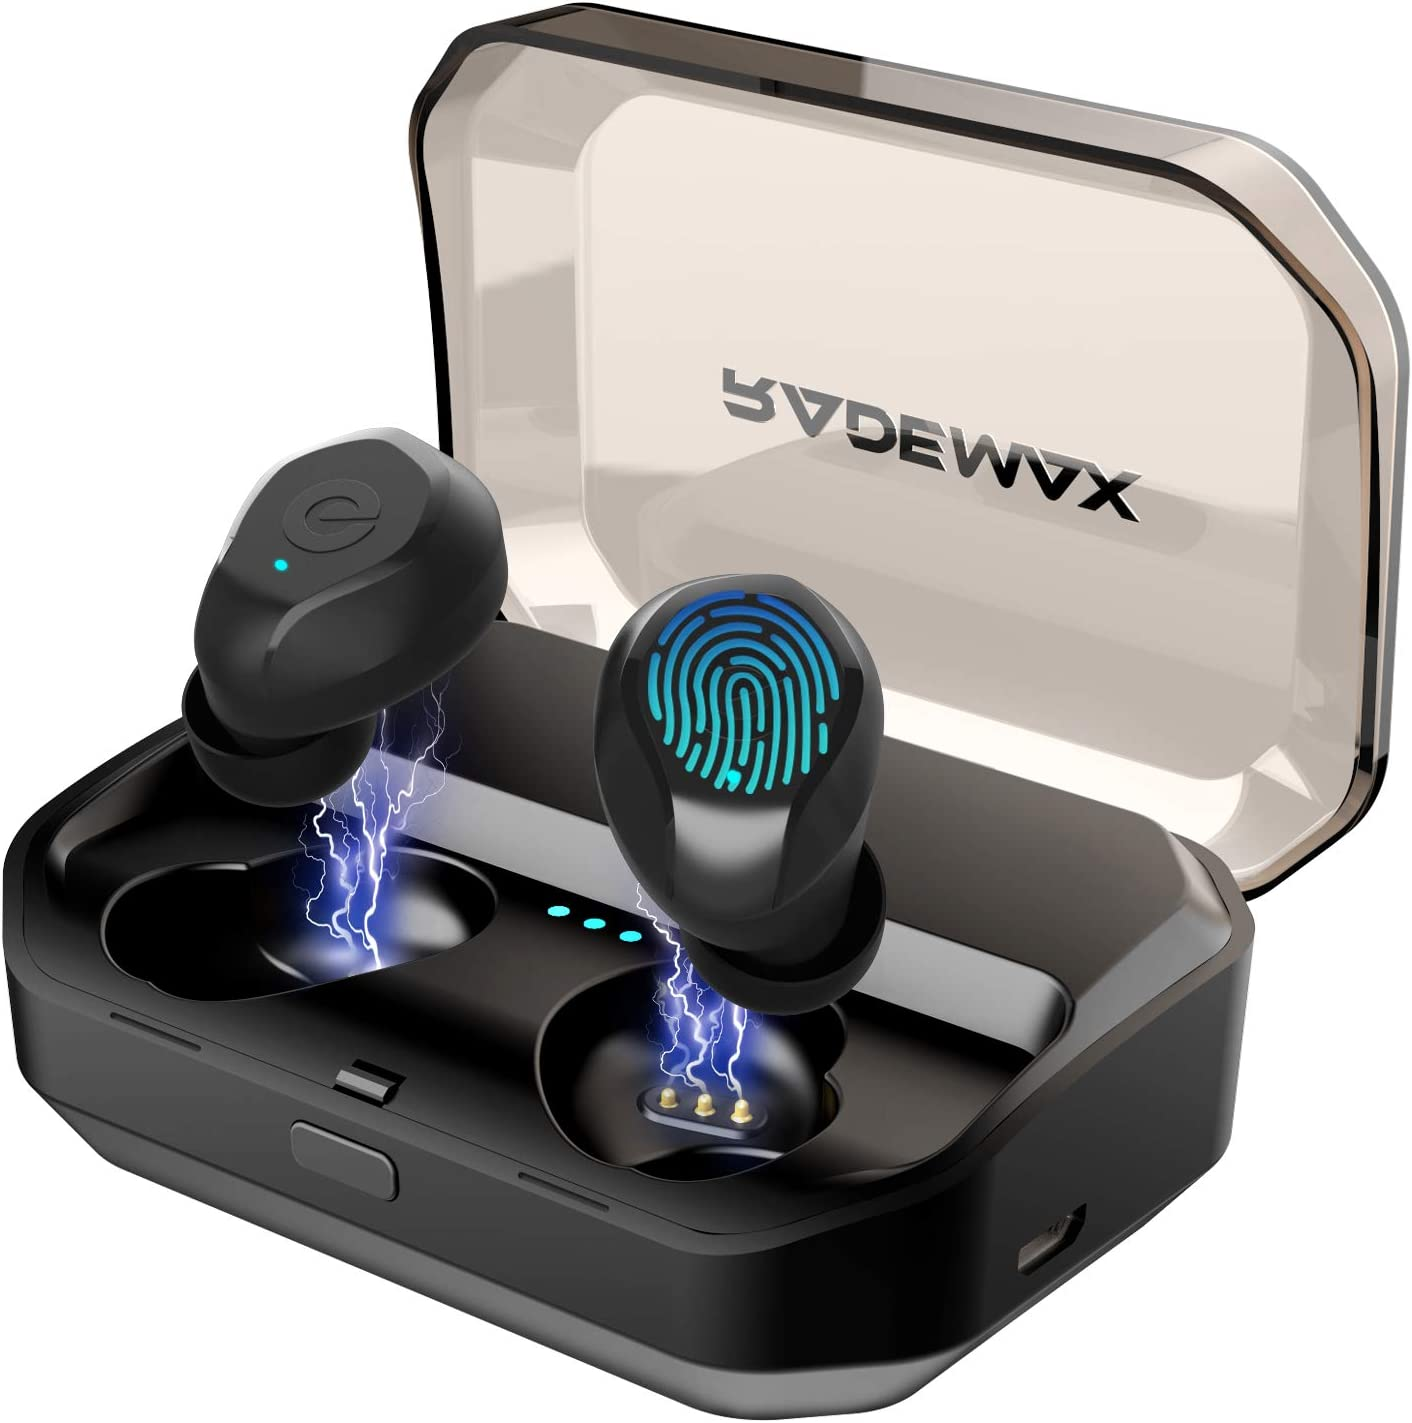 [Upgrade] True Wireless Earbuds,Bluetooth Earphones Bluetooth 5.0 Earbuds IPX7 Waterproof Headphones Auto Pairing in-Ear Stereo 90H Cycle Play Time Wireless Headset with 3350mAh Charging Case